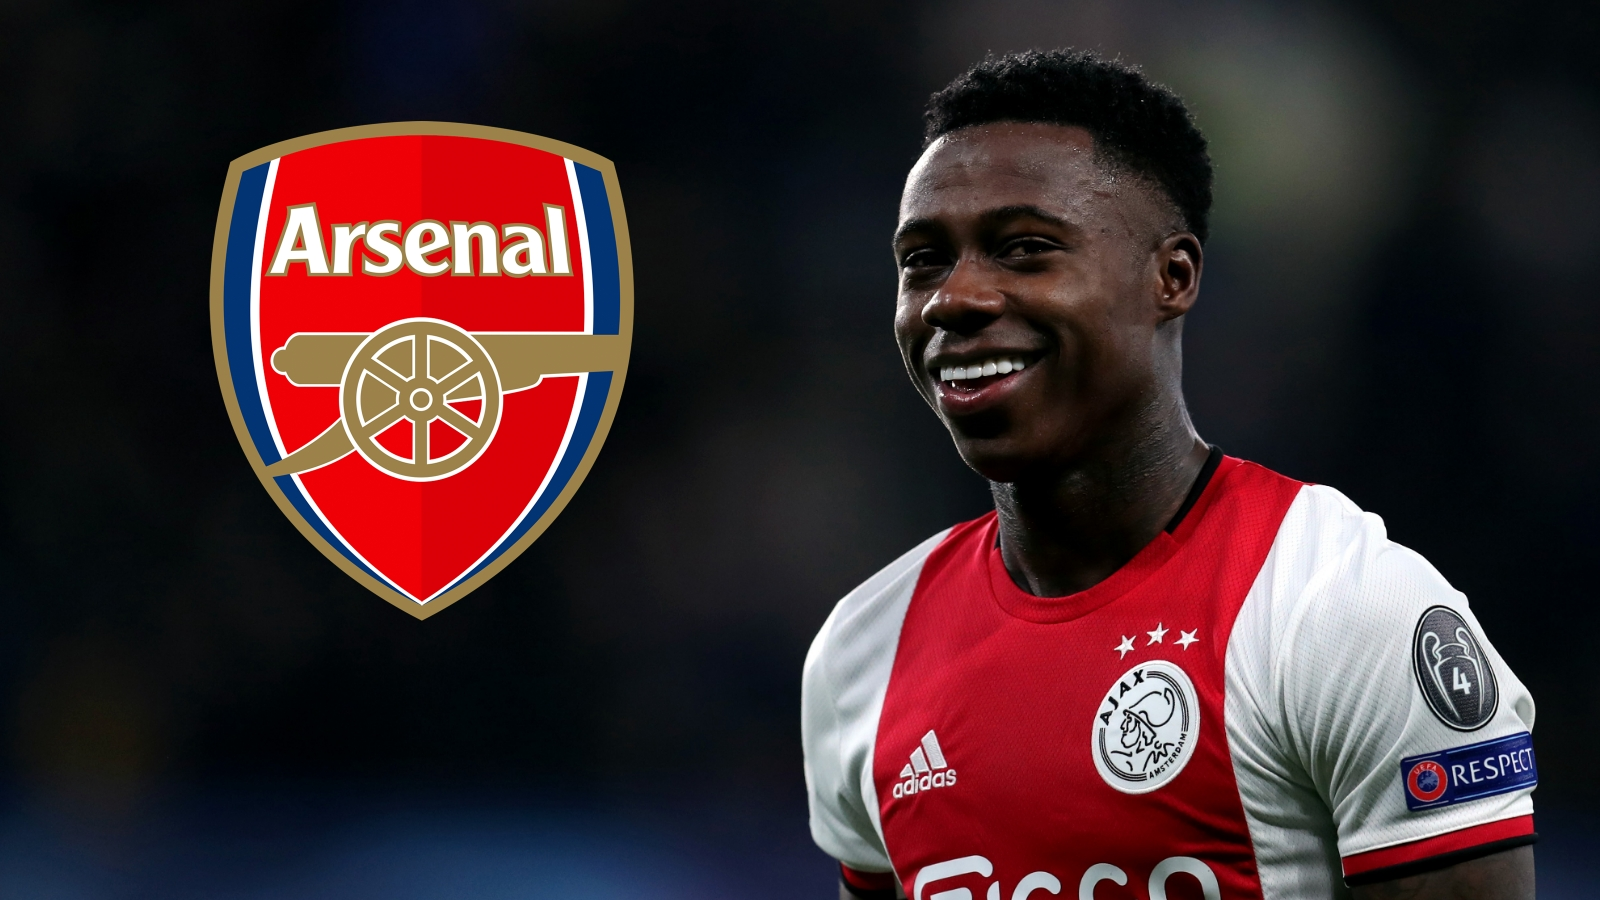 Transfer news and rumours LIVE: Arsenal planning £25m move for Ajax star Promes